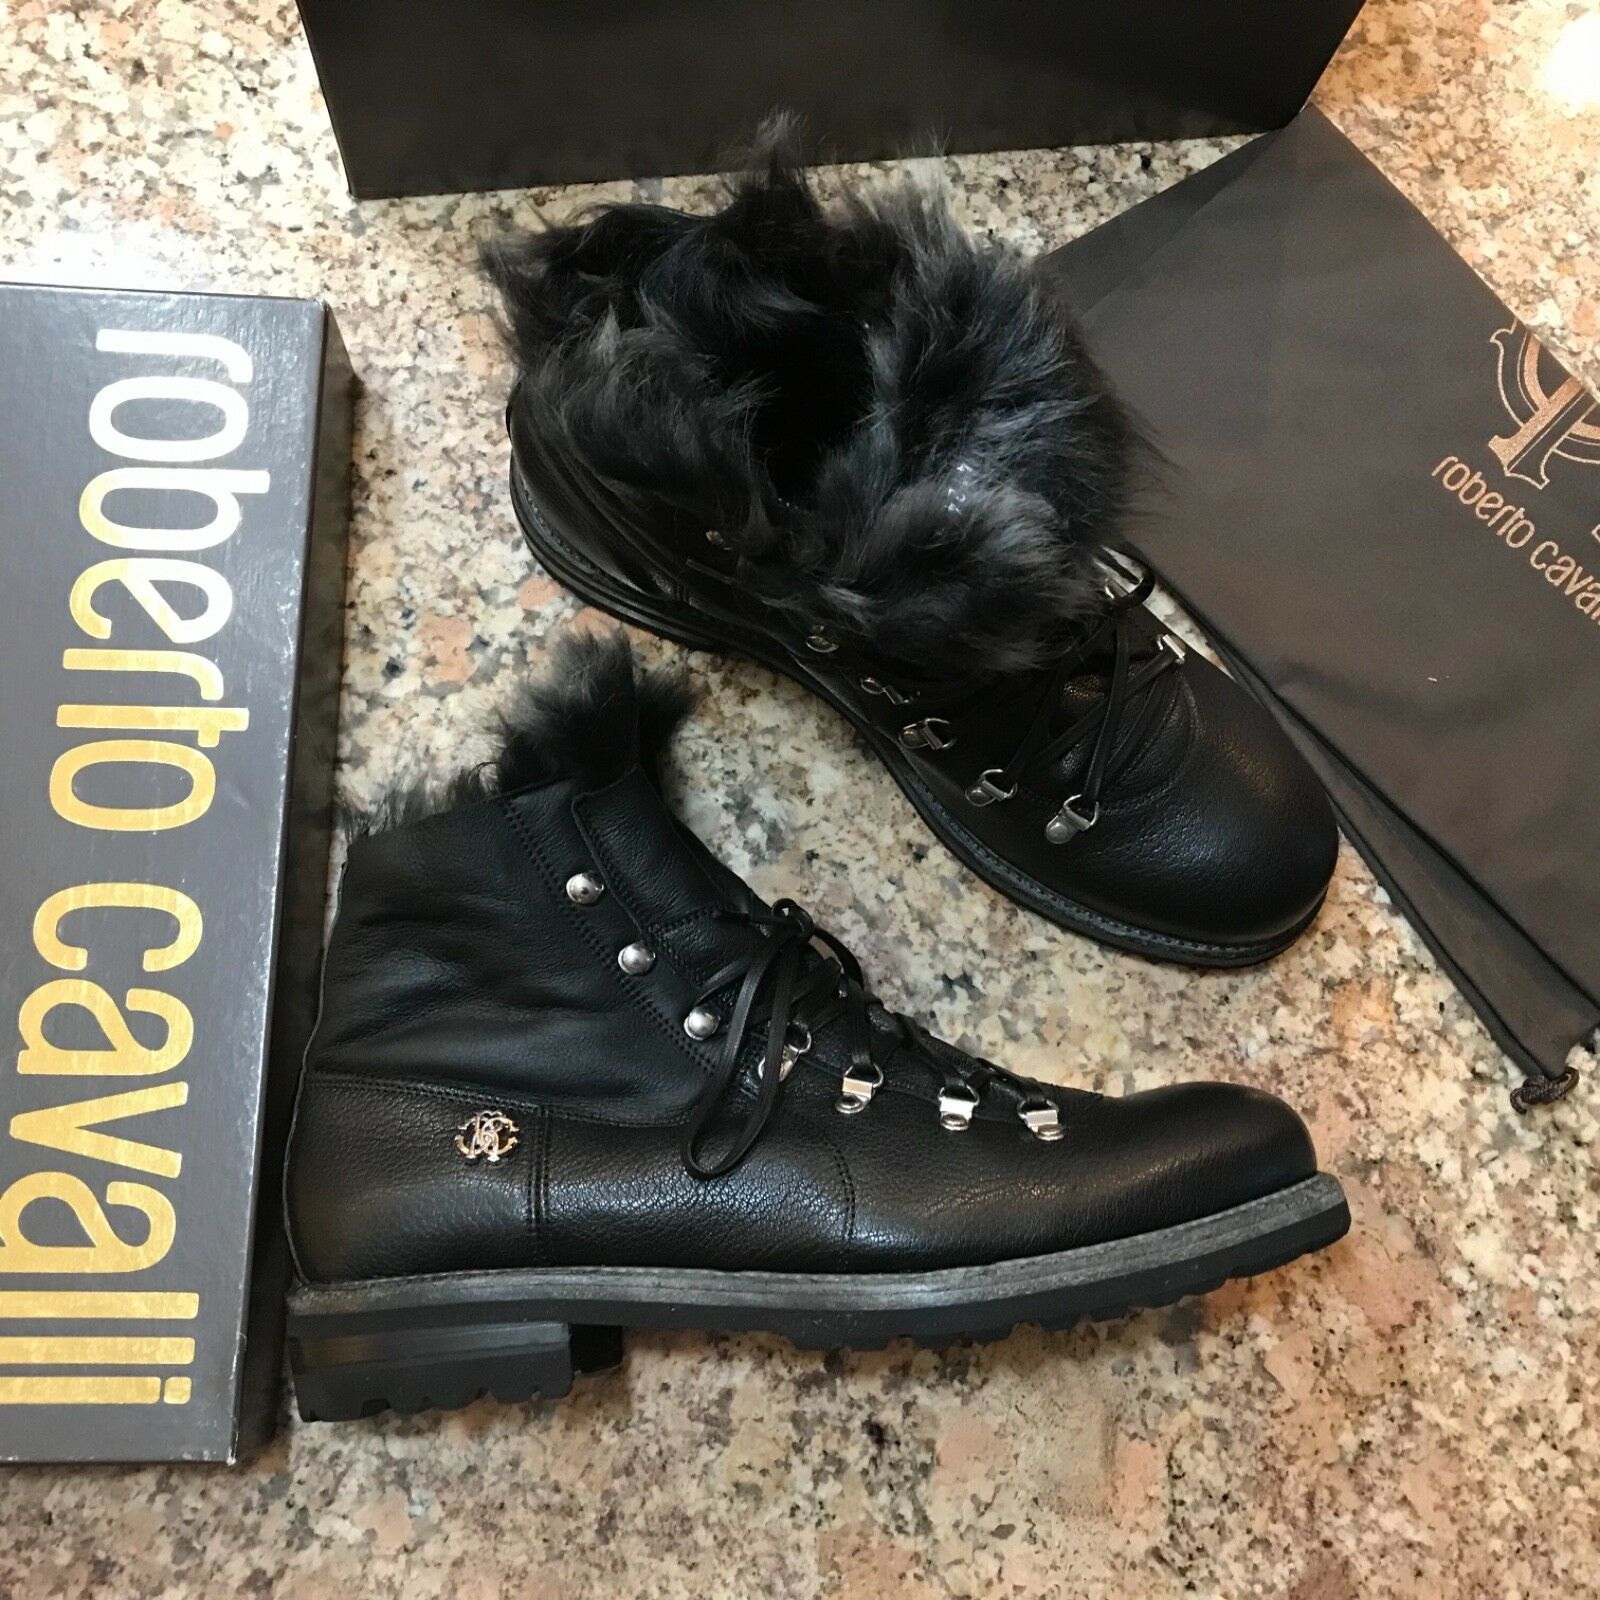 100% AUTHENTIC ROBERTO CAVALLI FUR TRIM COMBAT BOOTS, BLACK, SIZE10.5,NEW, ITALY